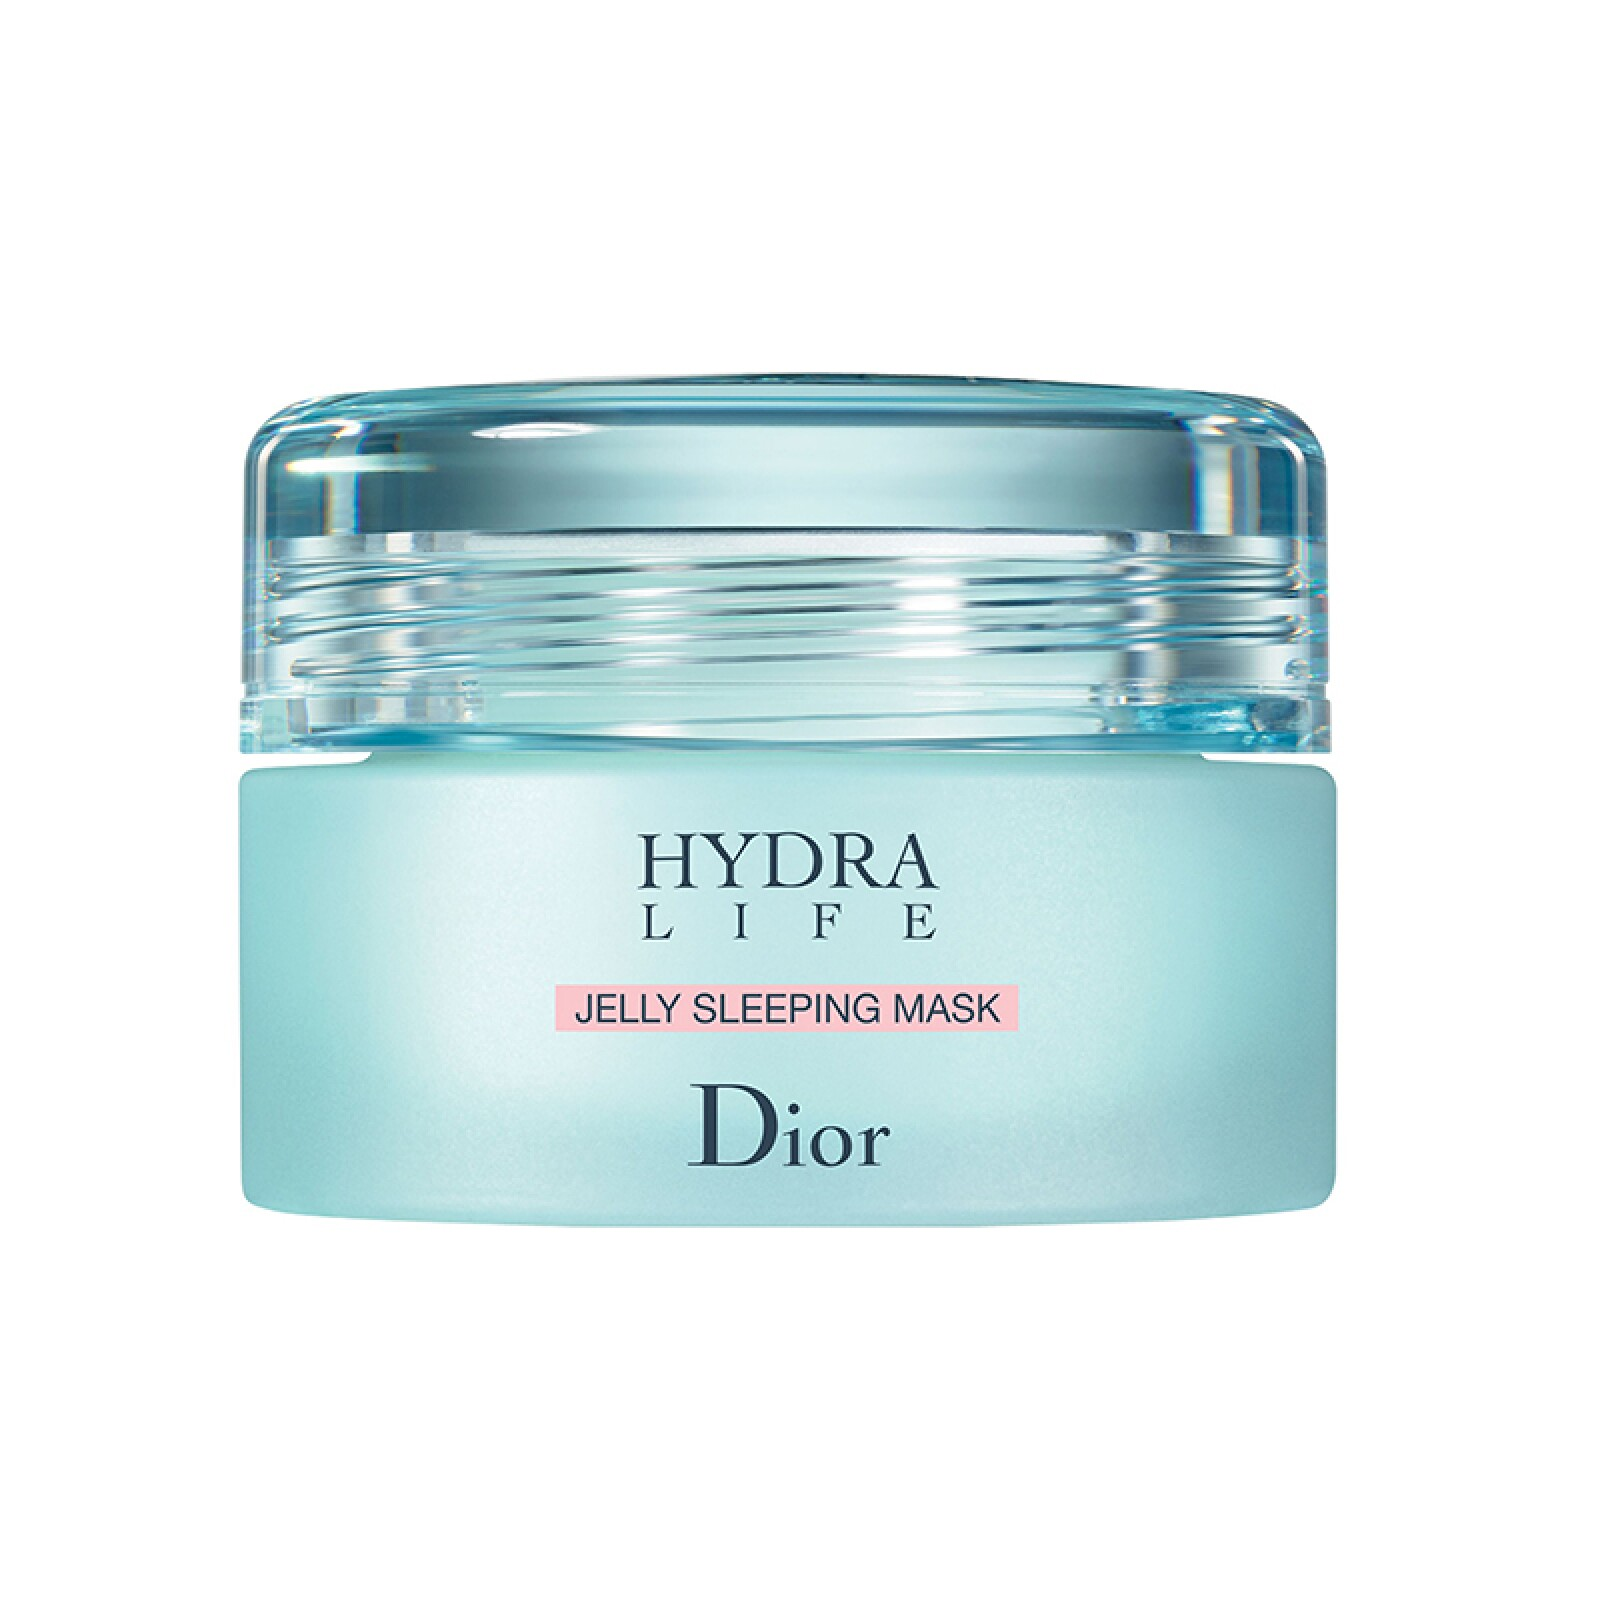 Dior-Hydra-Life-Jelly-Sleeping-Mask-.jpg